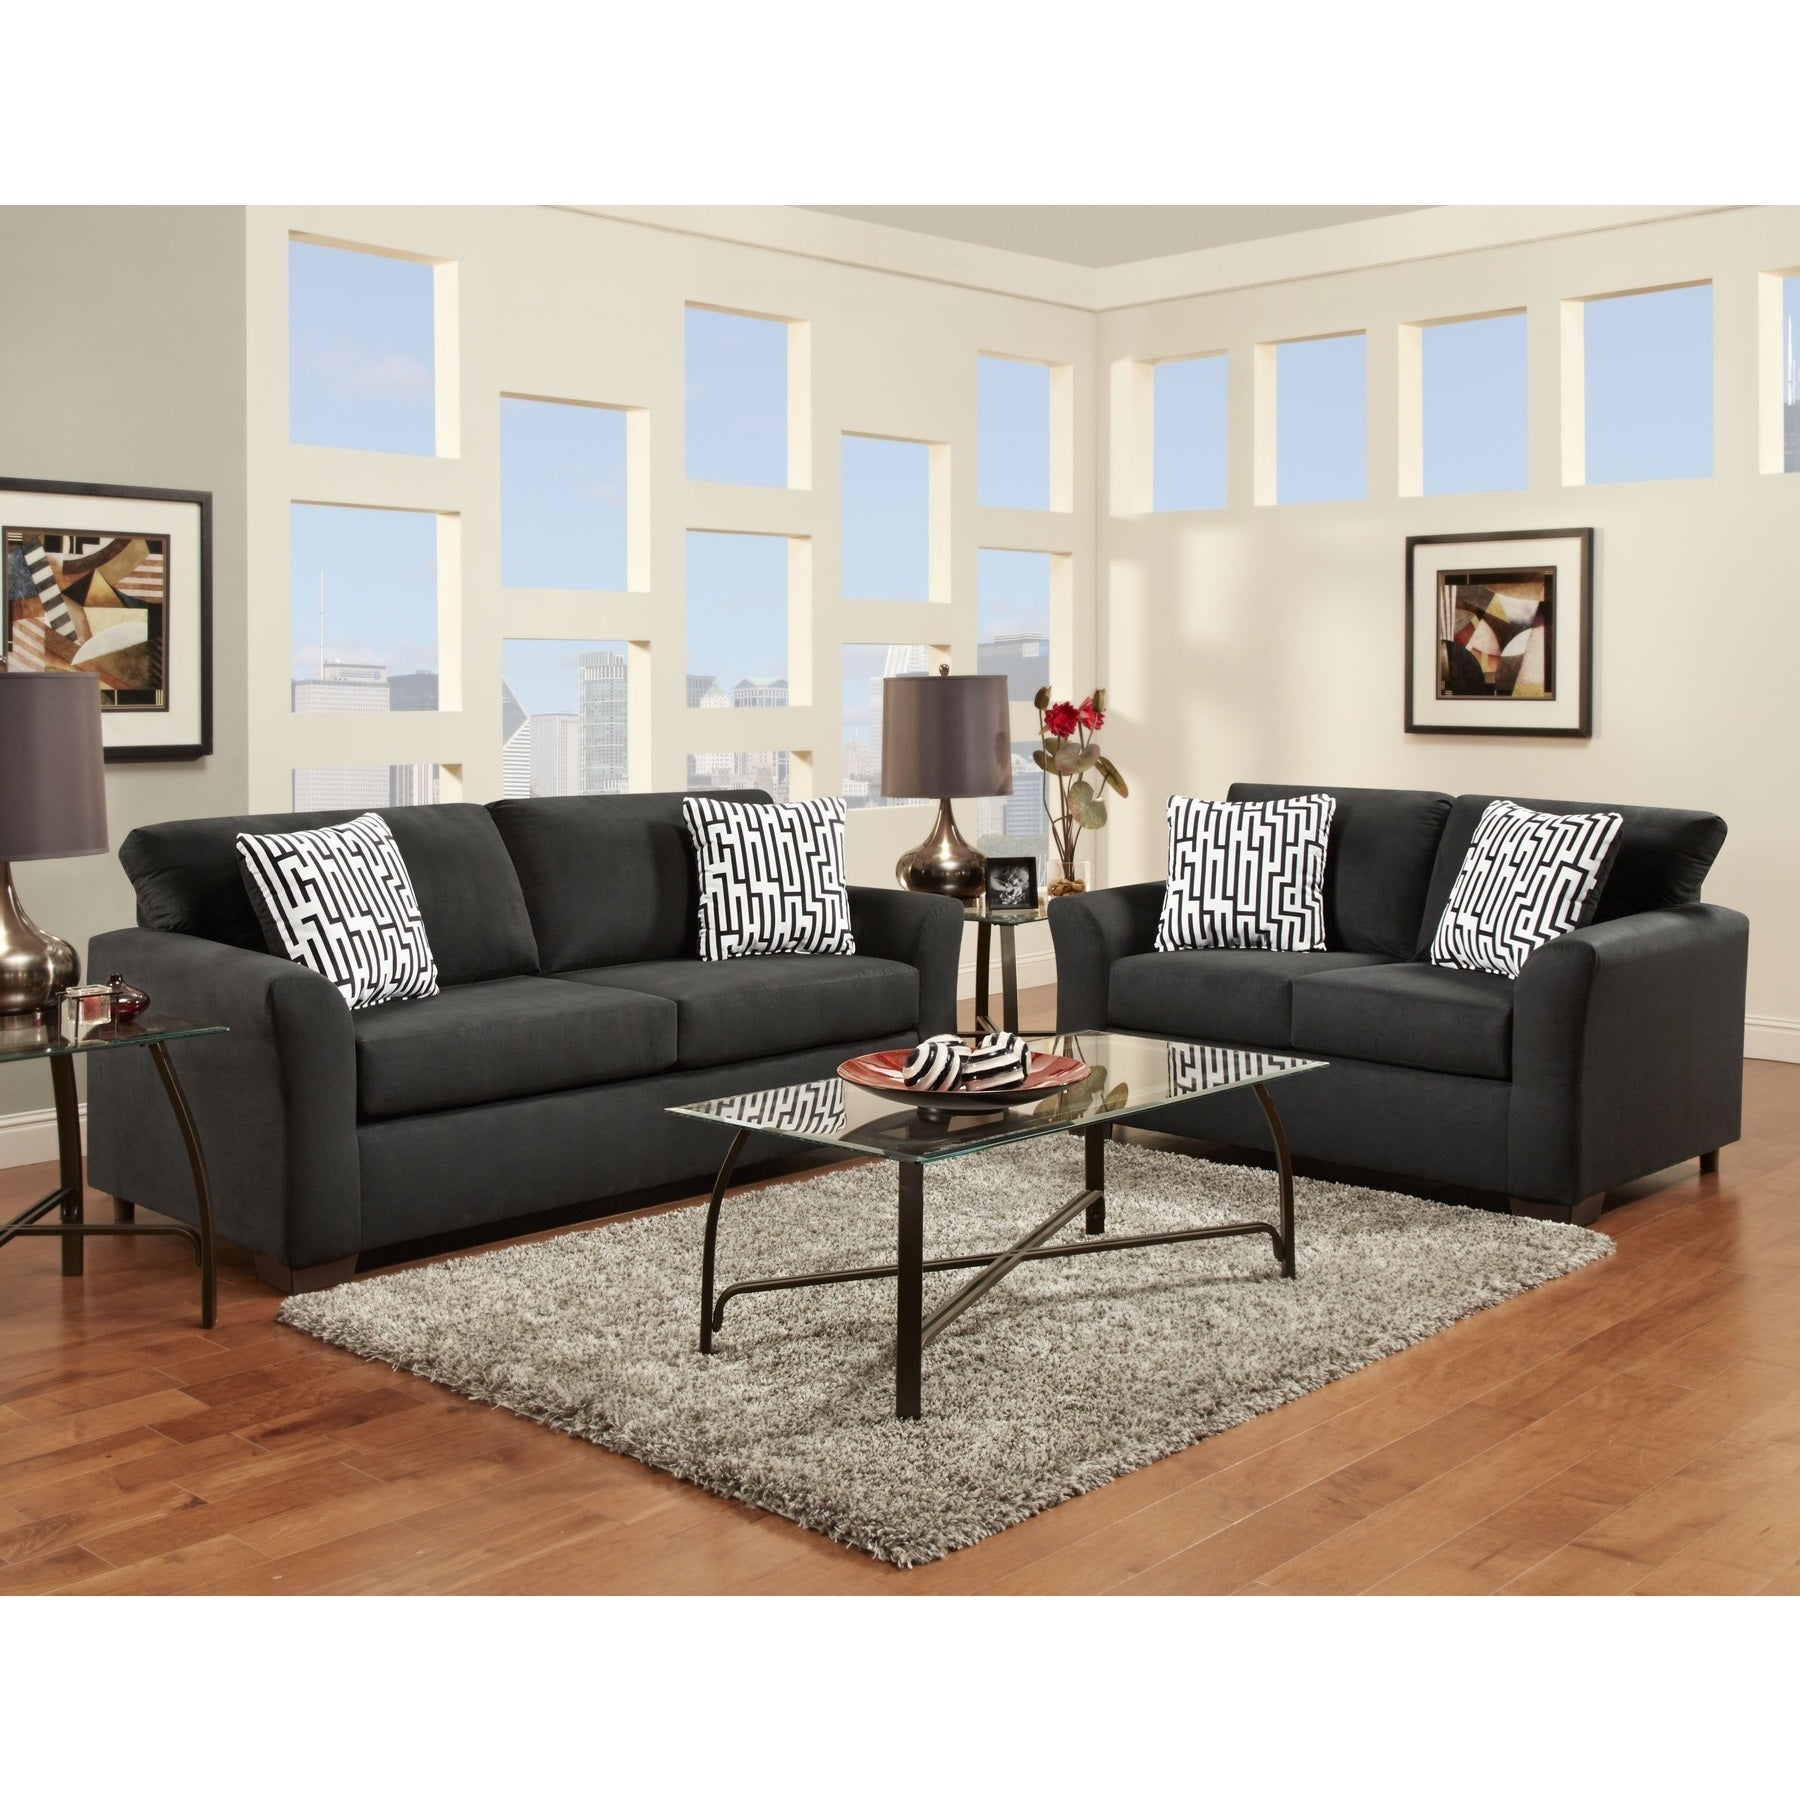 Super Mazemic Black Microfiber 2 Seater Sofa And Loveseat Set With Pillows Forskolin Free Trial Chair Design Images Forskolin Free Trialorg